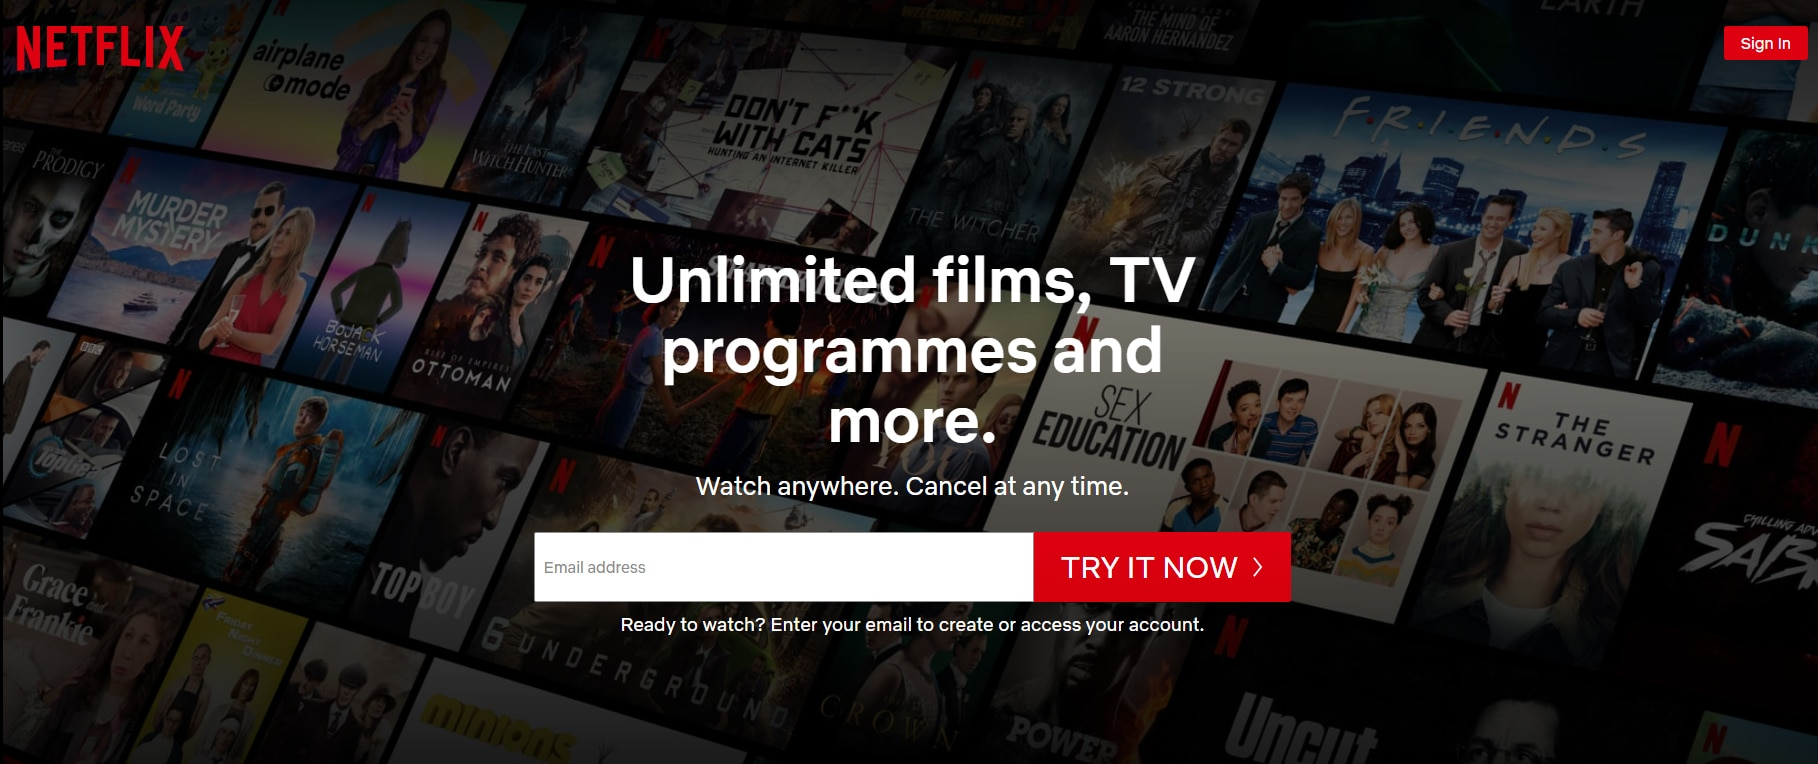 netflix-how-to-turn-off-autoplay-when-browsing